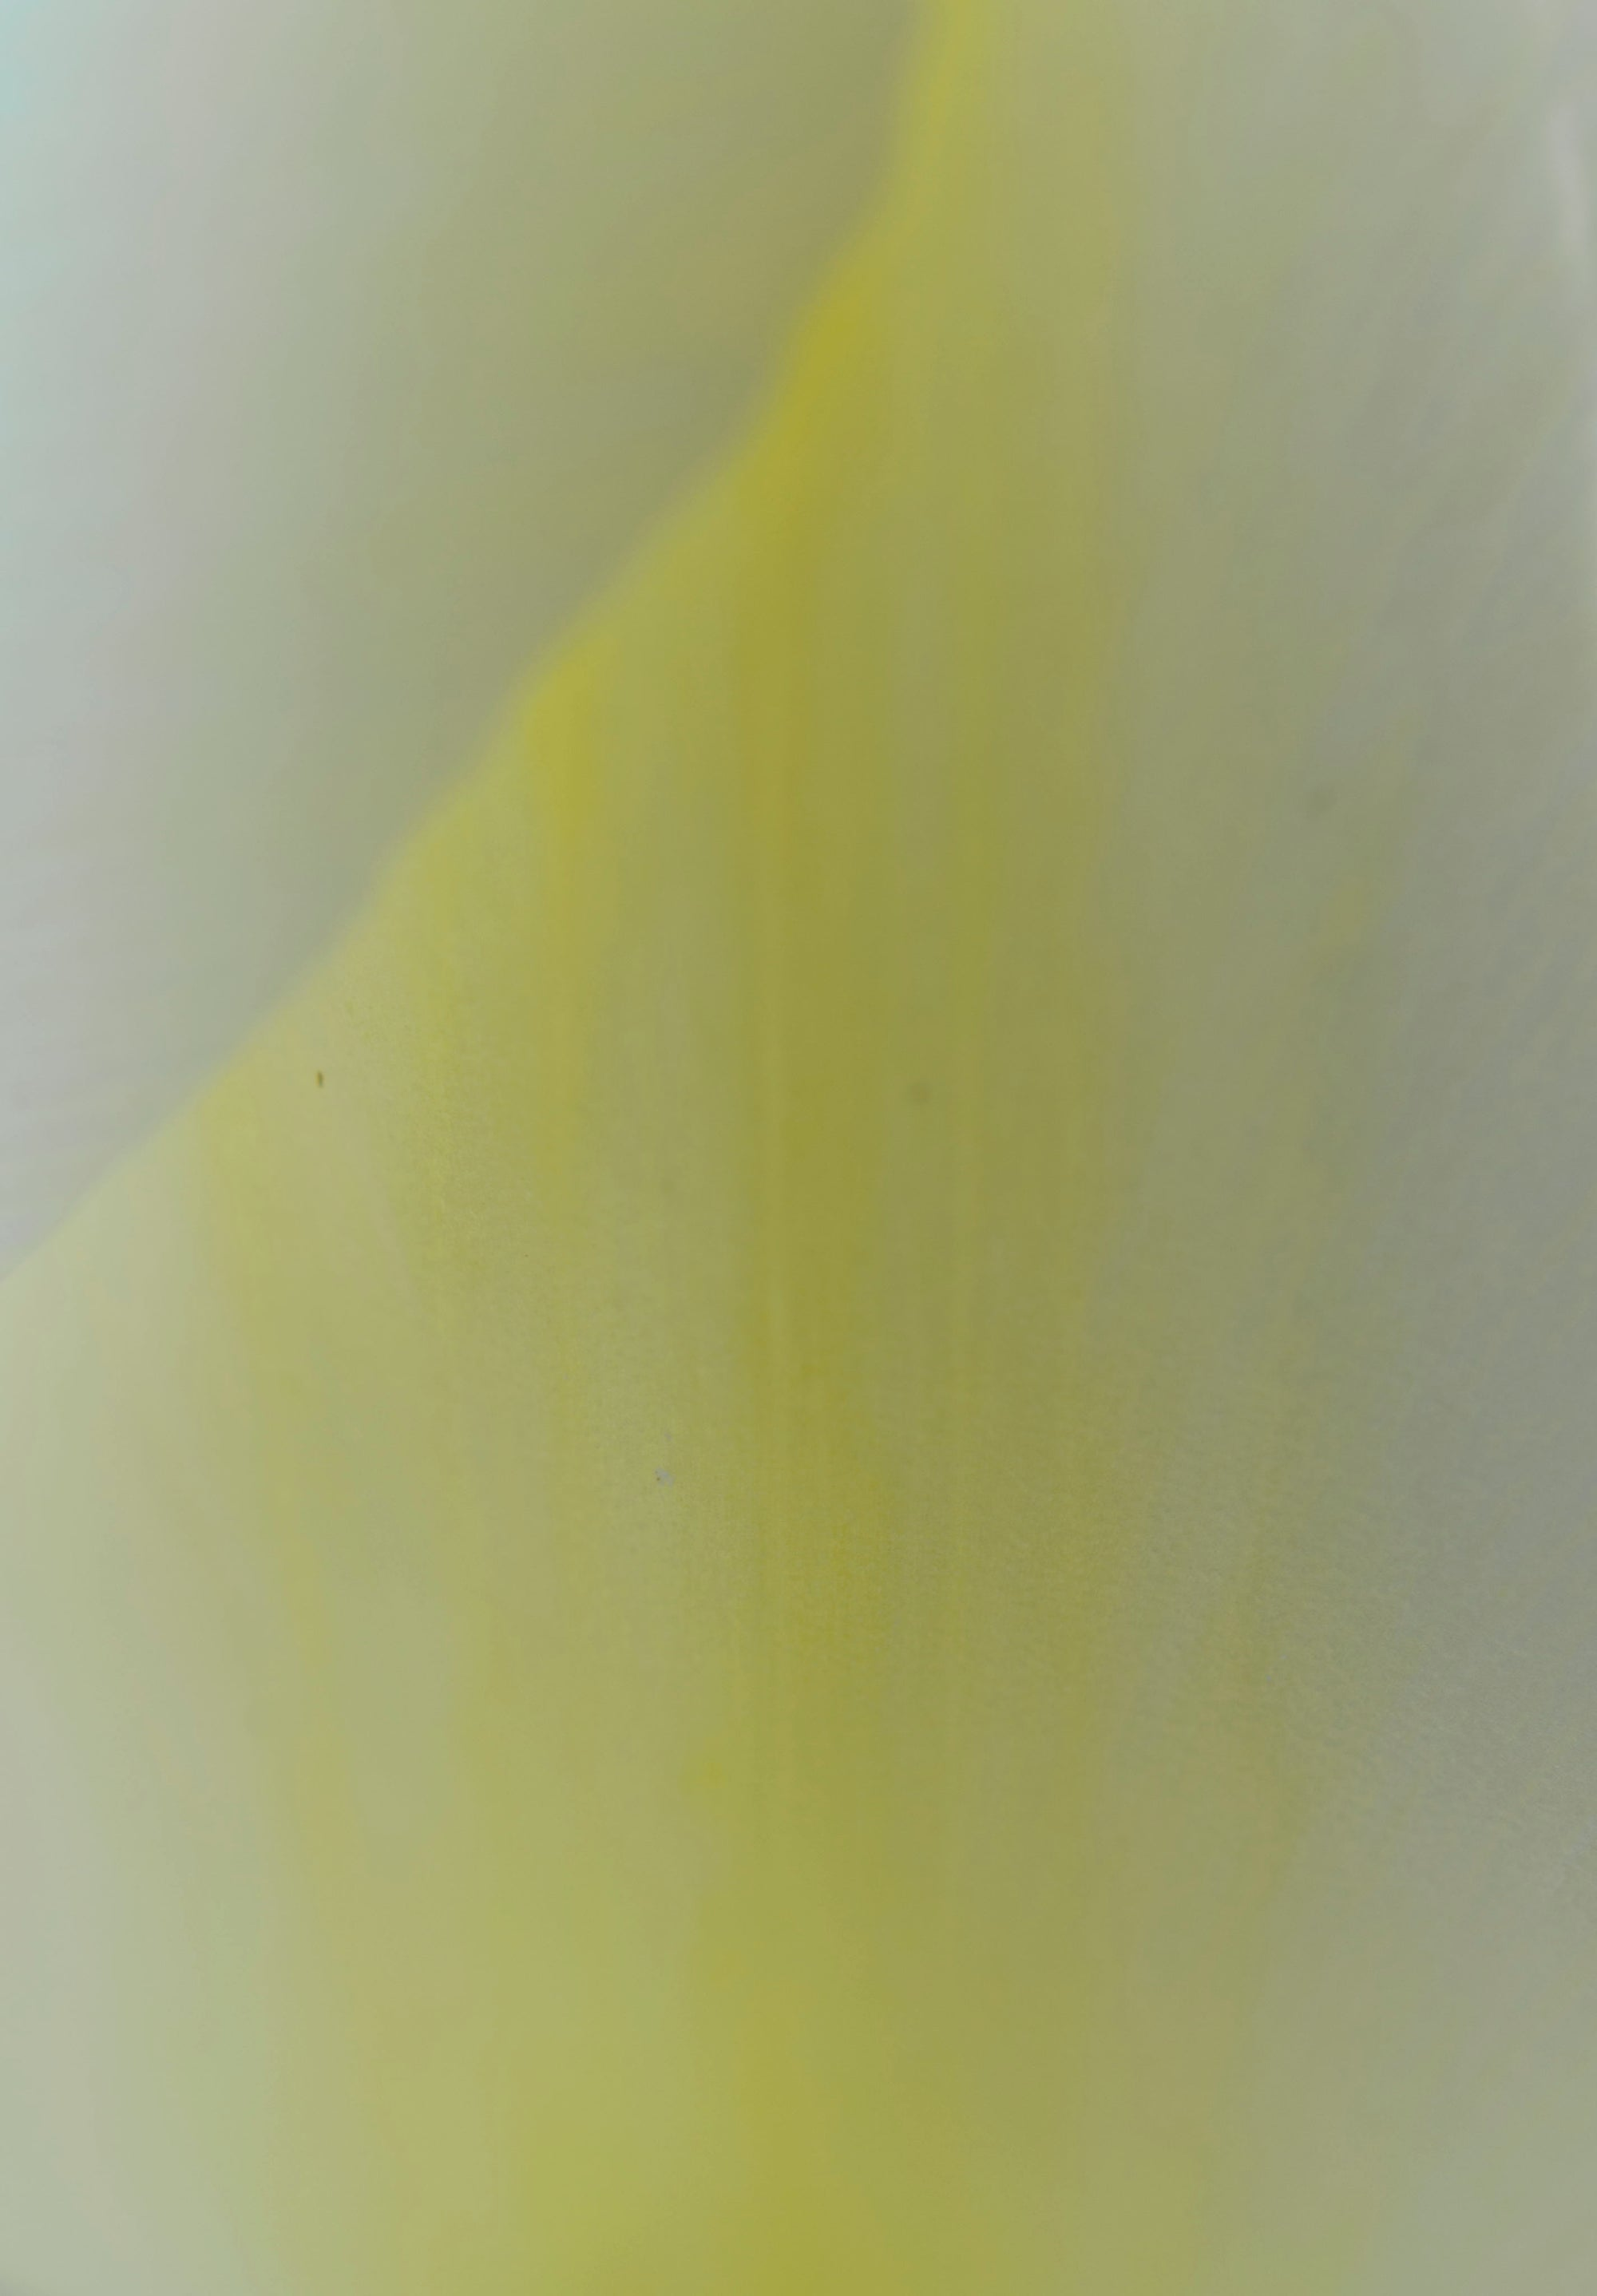 <I>Yellow & White (Tulip)</I><br>Mendocino, California, 2014<br><br>GC0383